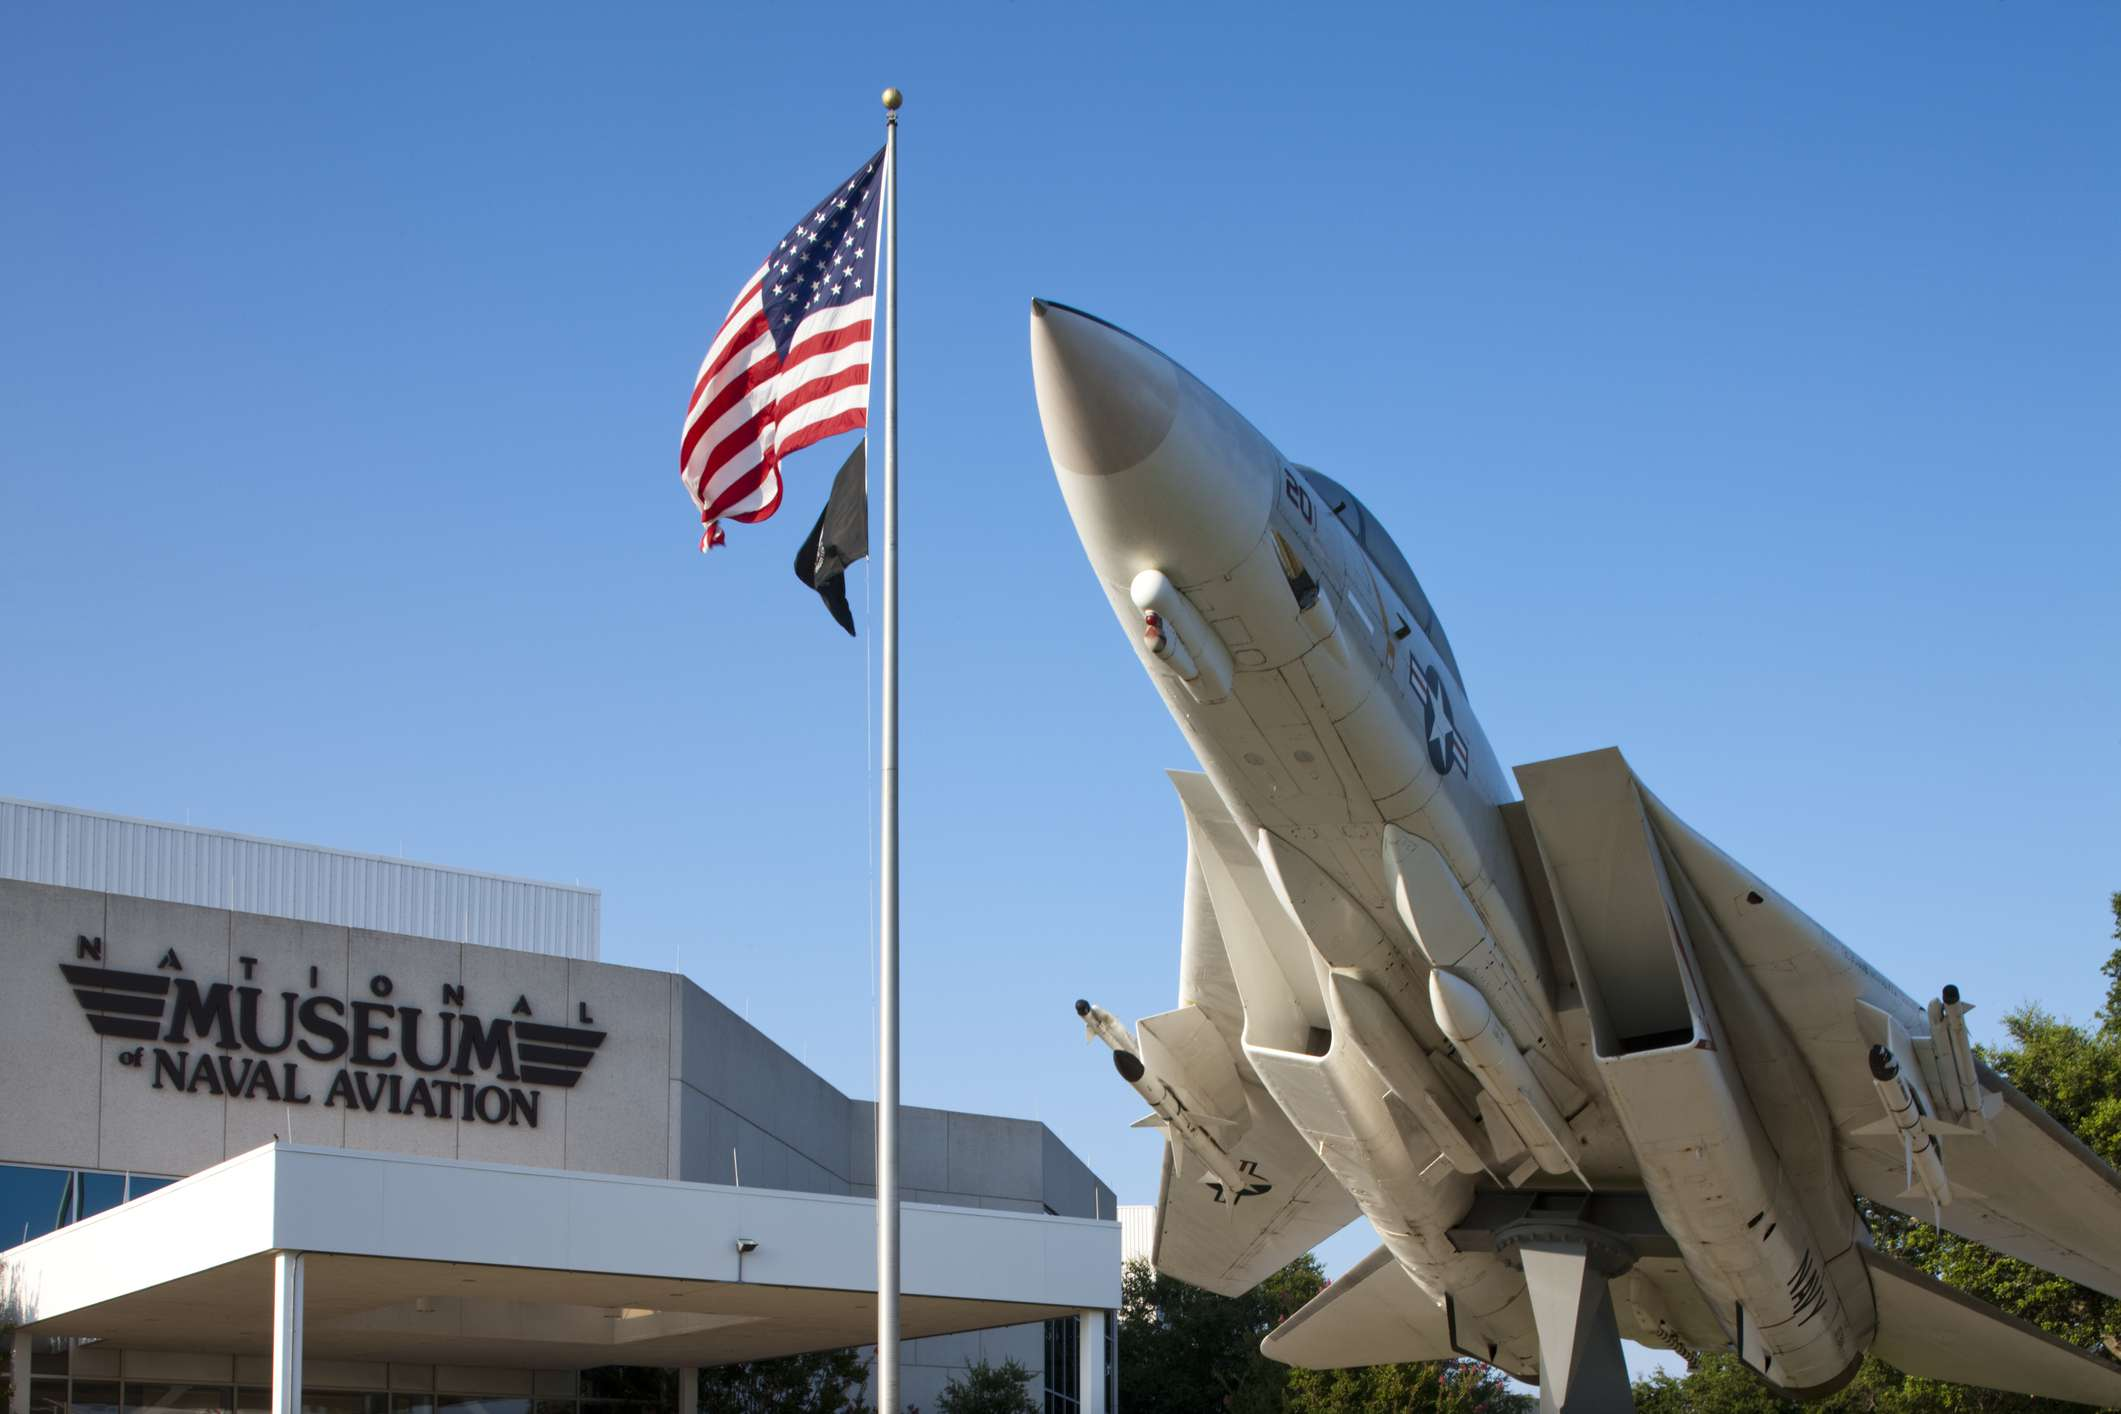 Museum of Naval Aviation